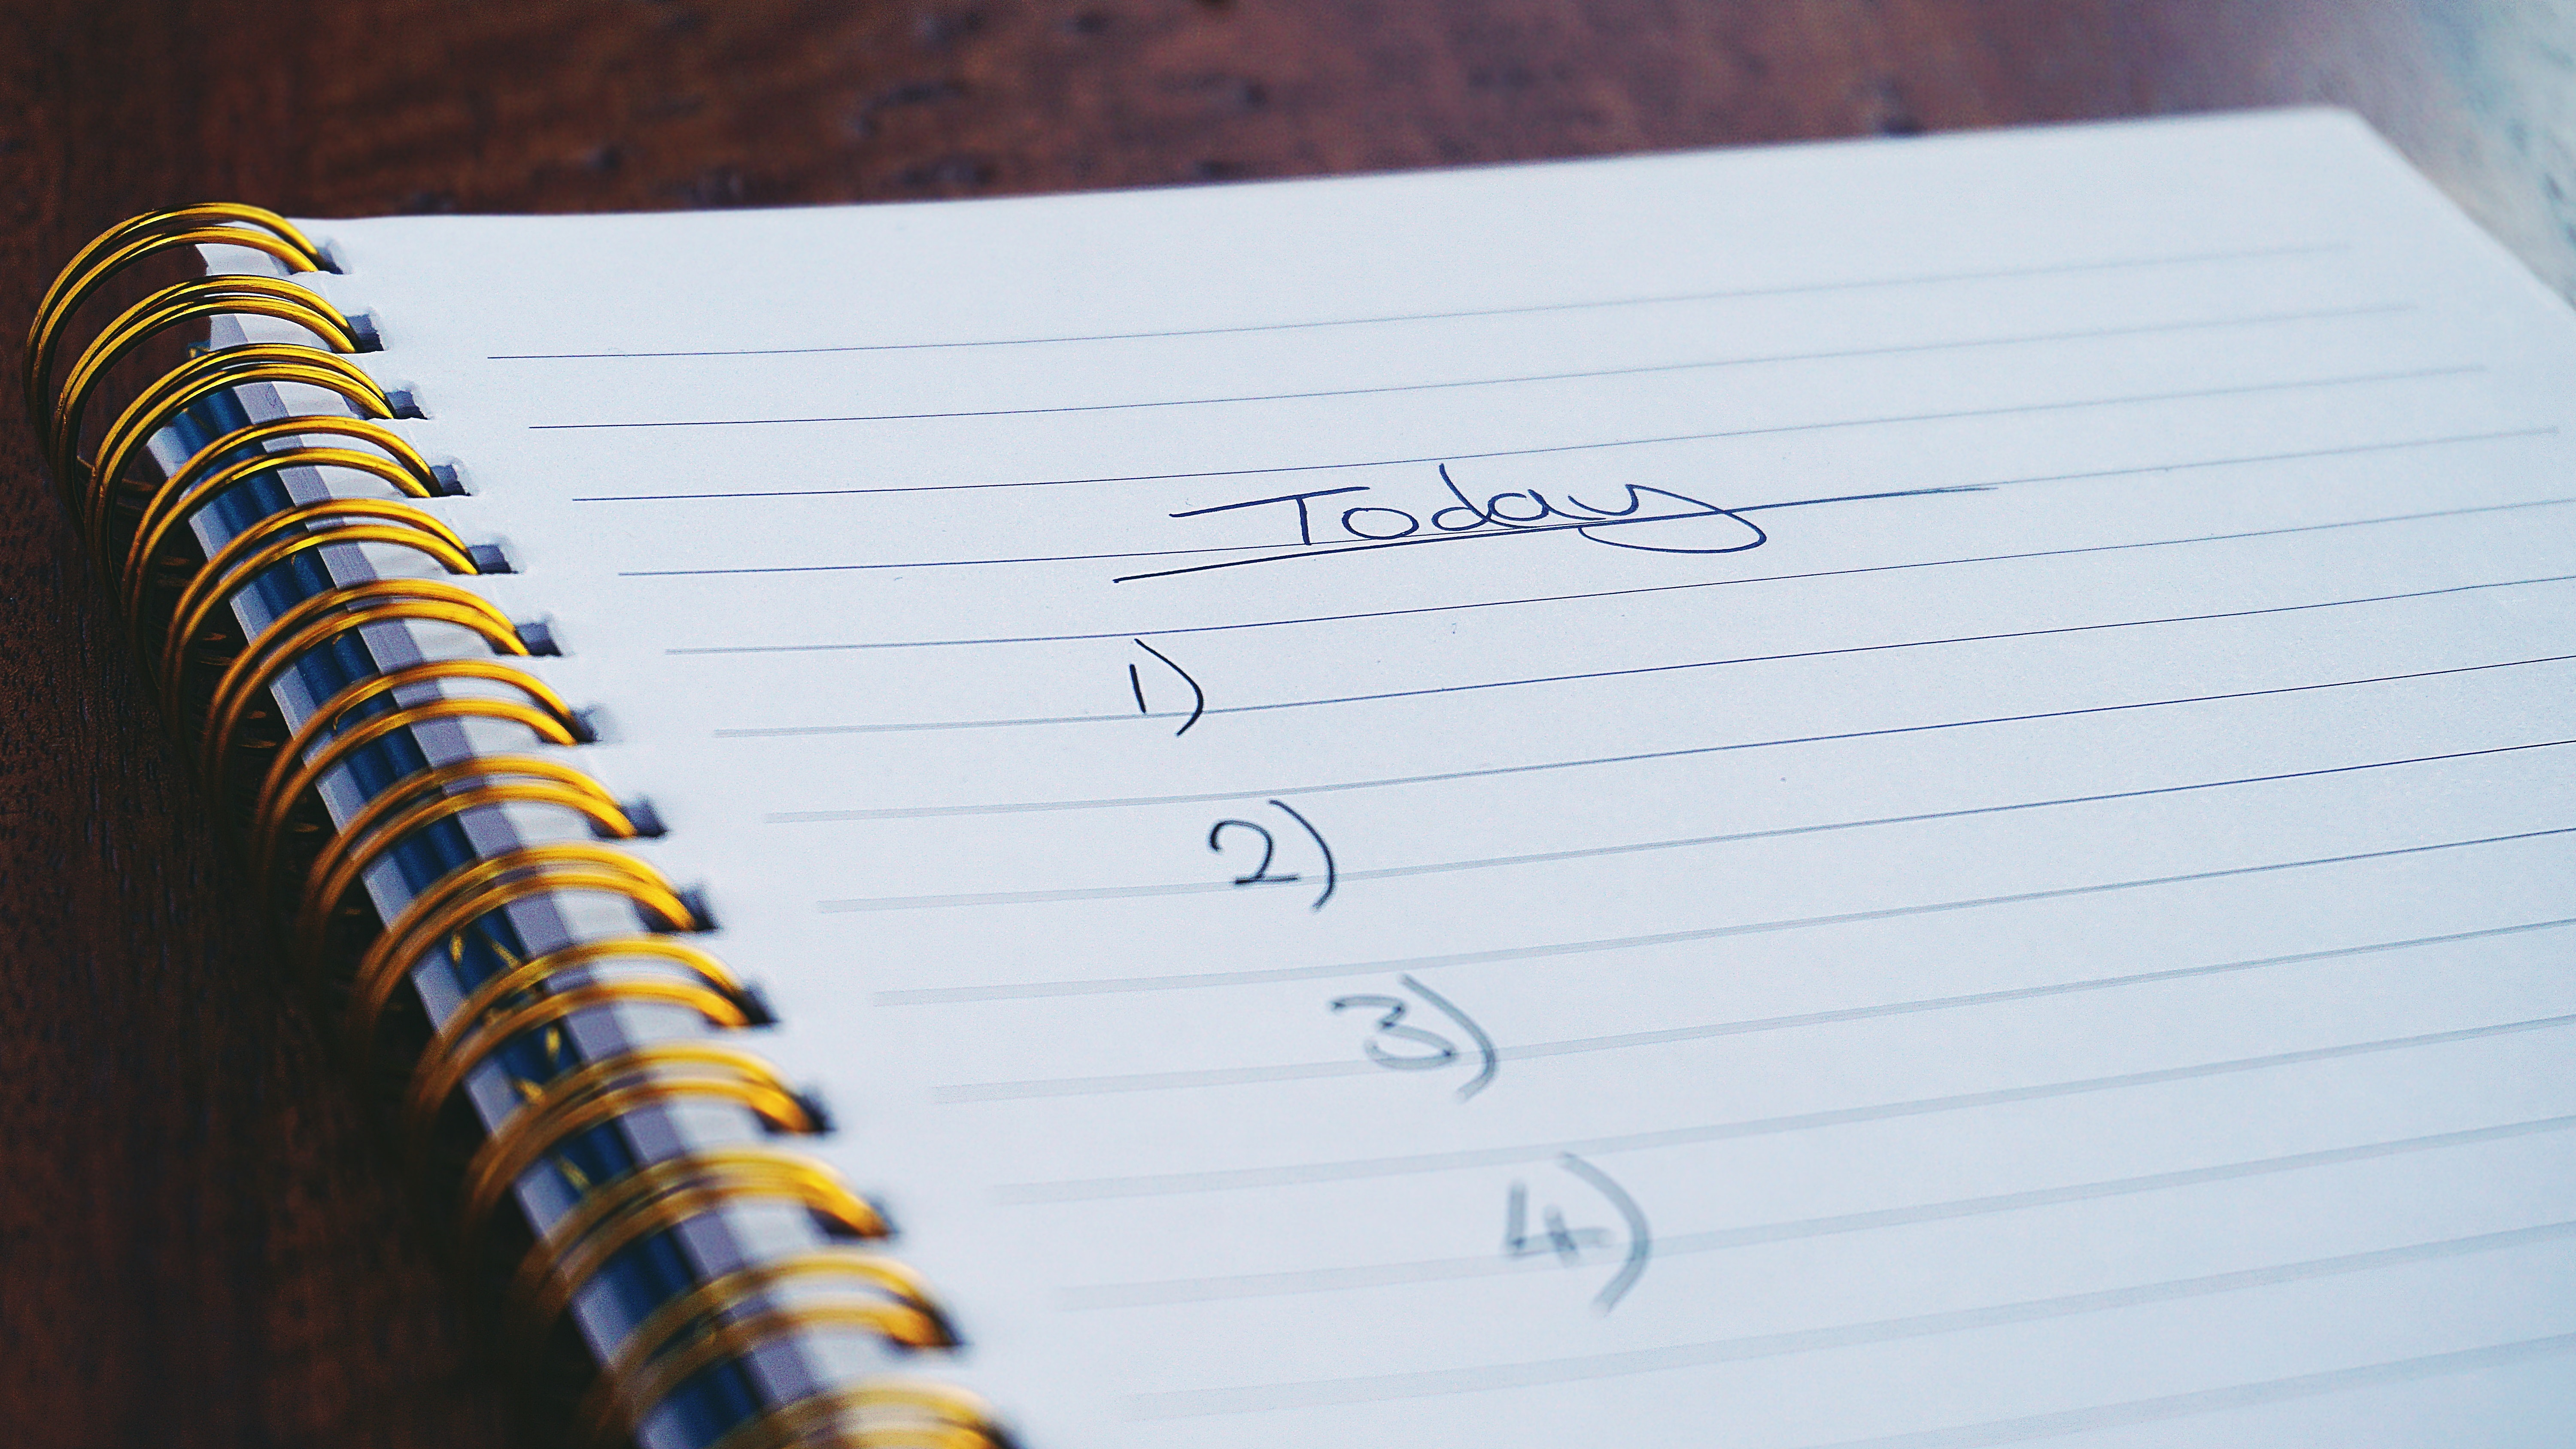 Why rely on your to-do list when you can set up automatic reminders?